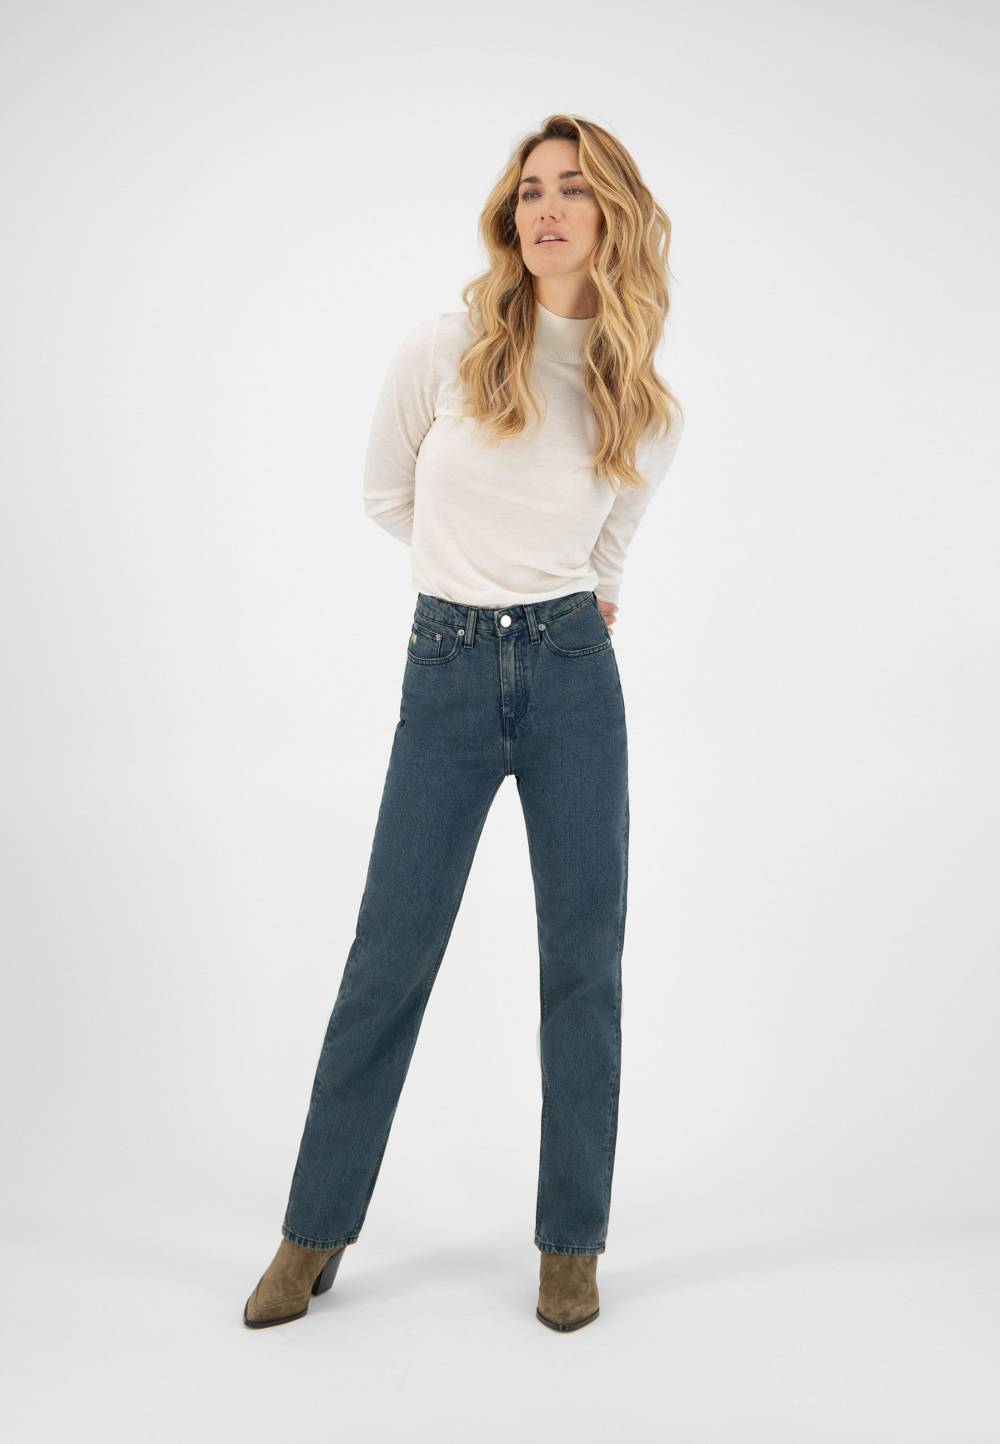 mud jeans affordable vegan sustainable